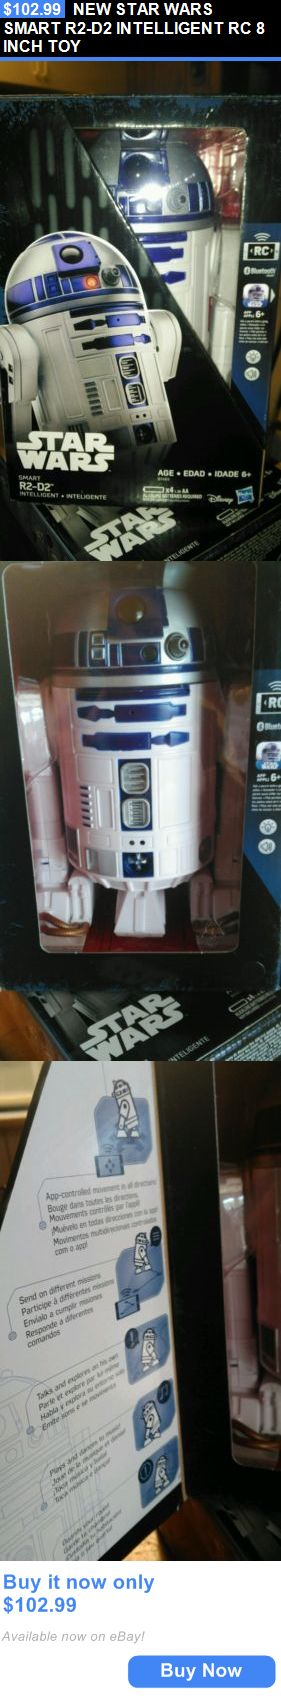 Toys And Games: New Star Wars Smart R2-D2 Intelligent Rc 8 Inch Toy BUY IT NOW ONLY: $102.99